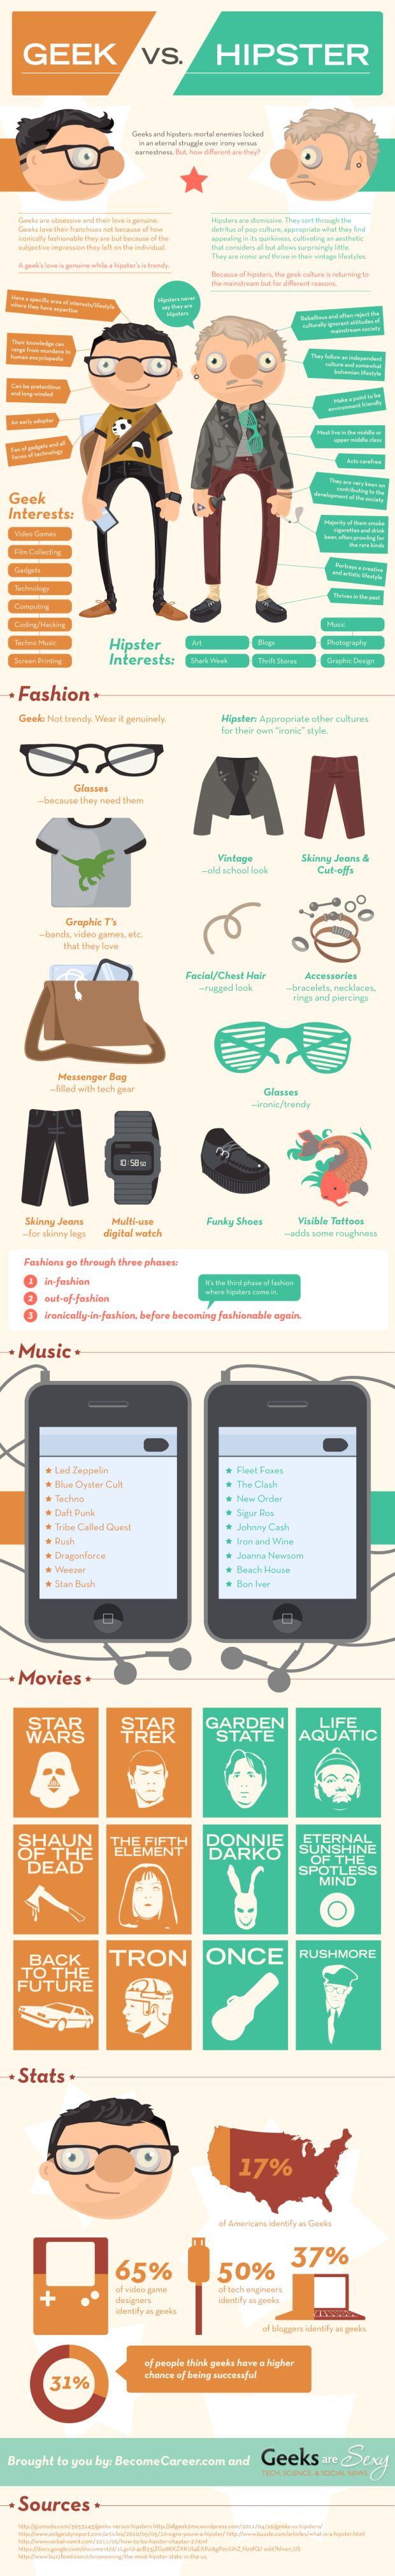 Geeks vs Hipsters. For those of you who need clarification.